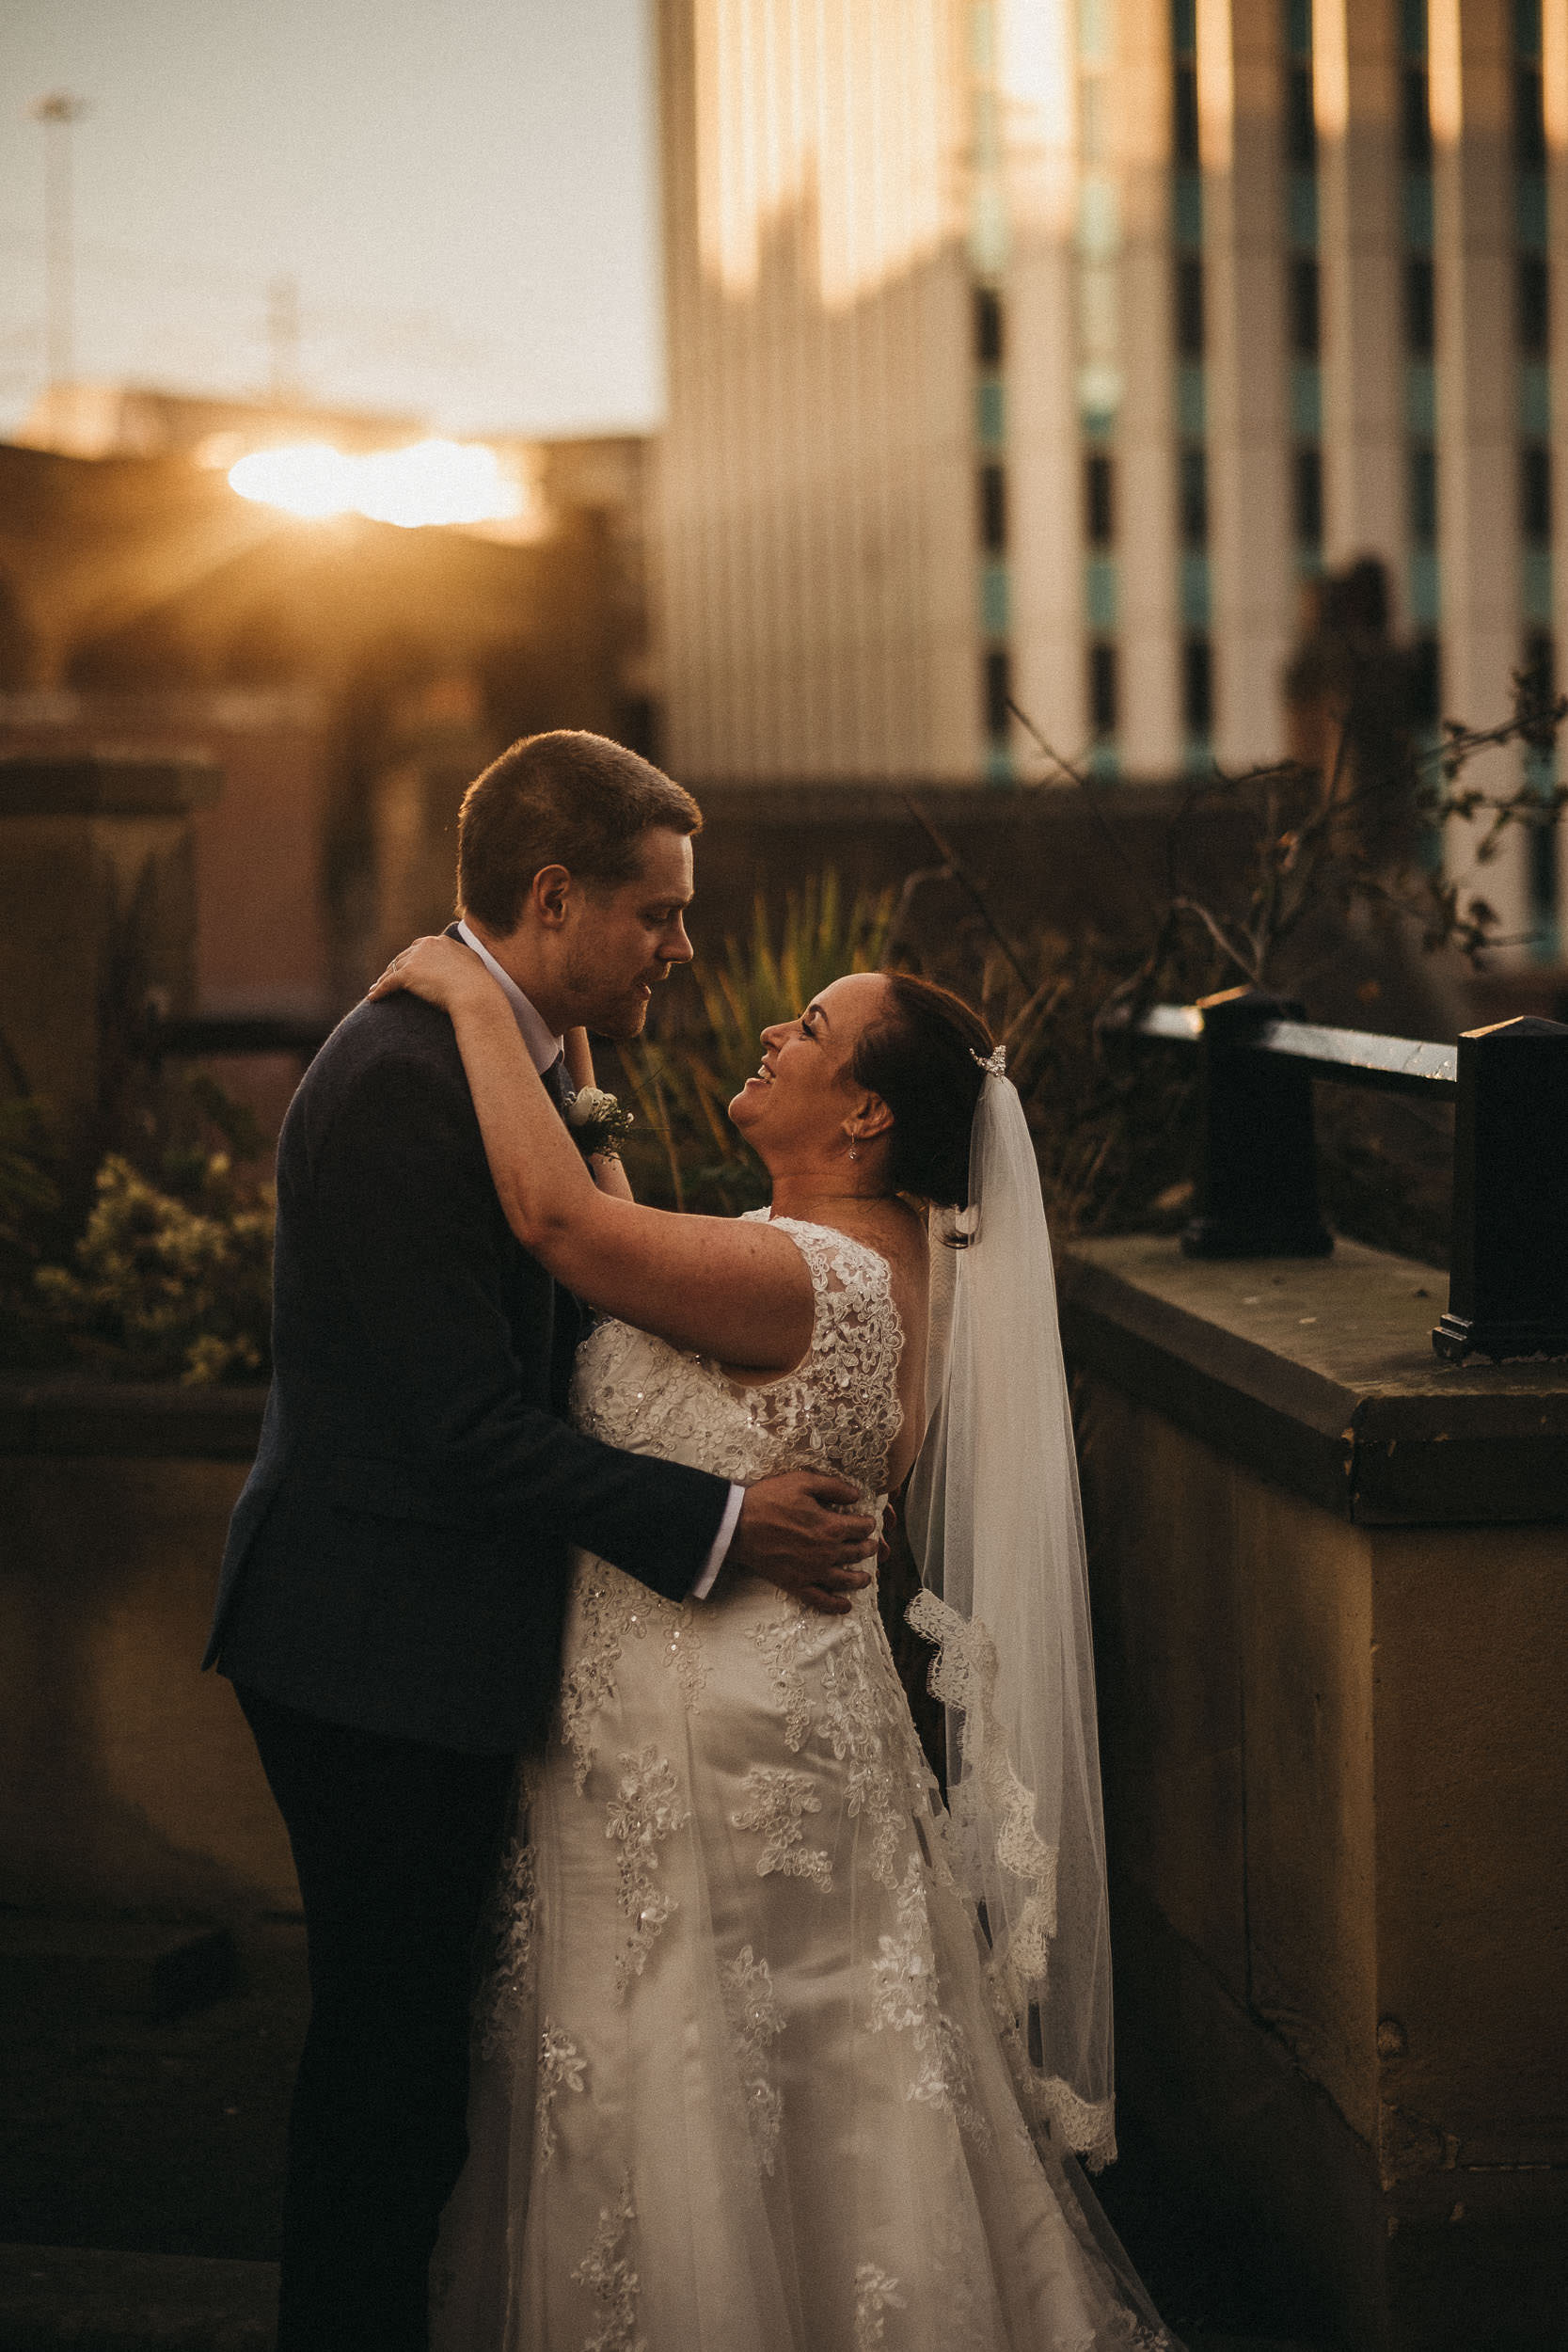 Bride and groom embrace with beautiful sunlight behind